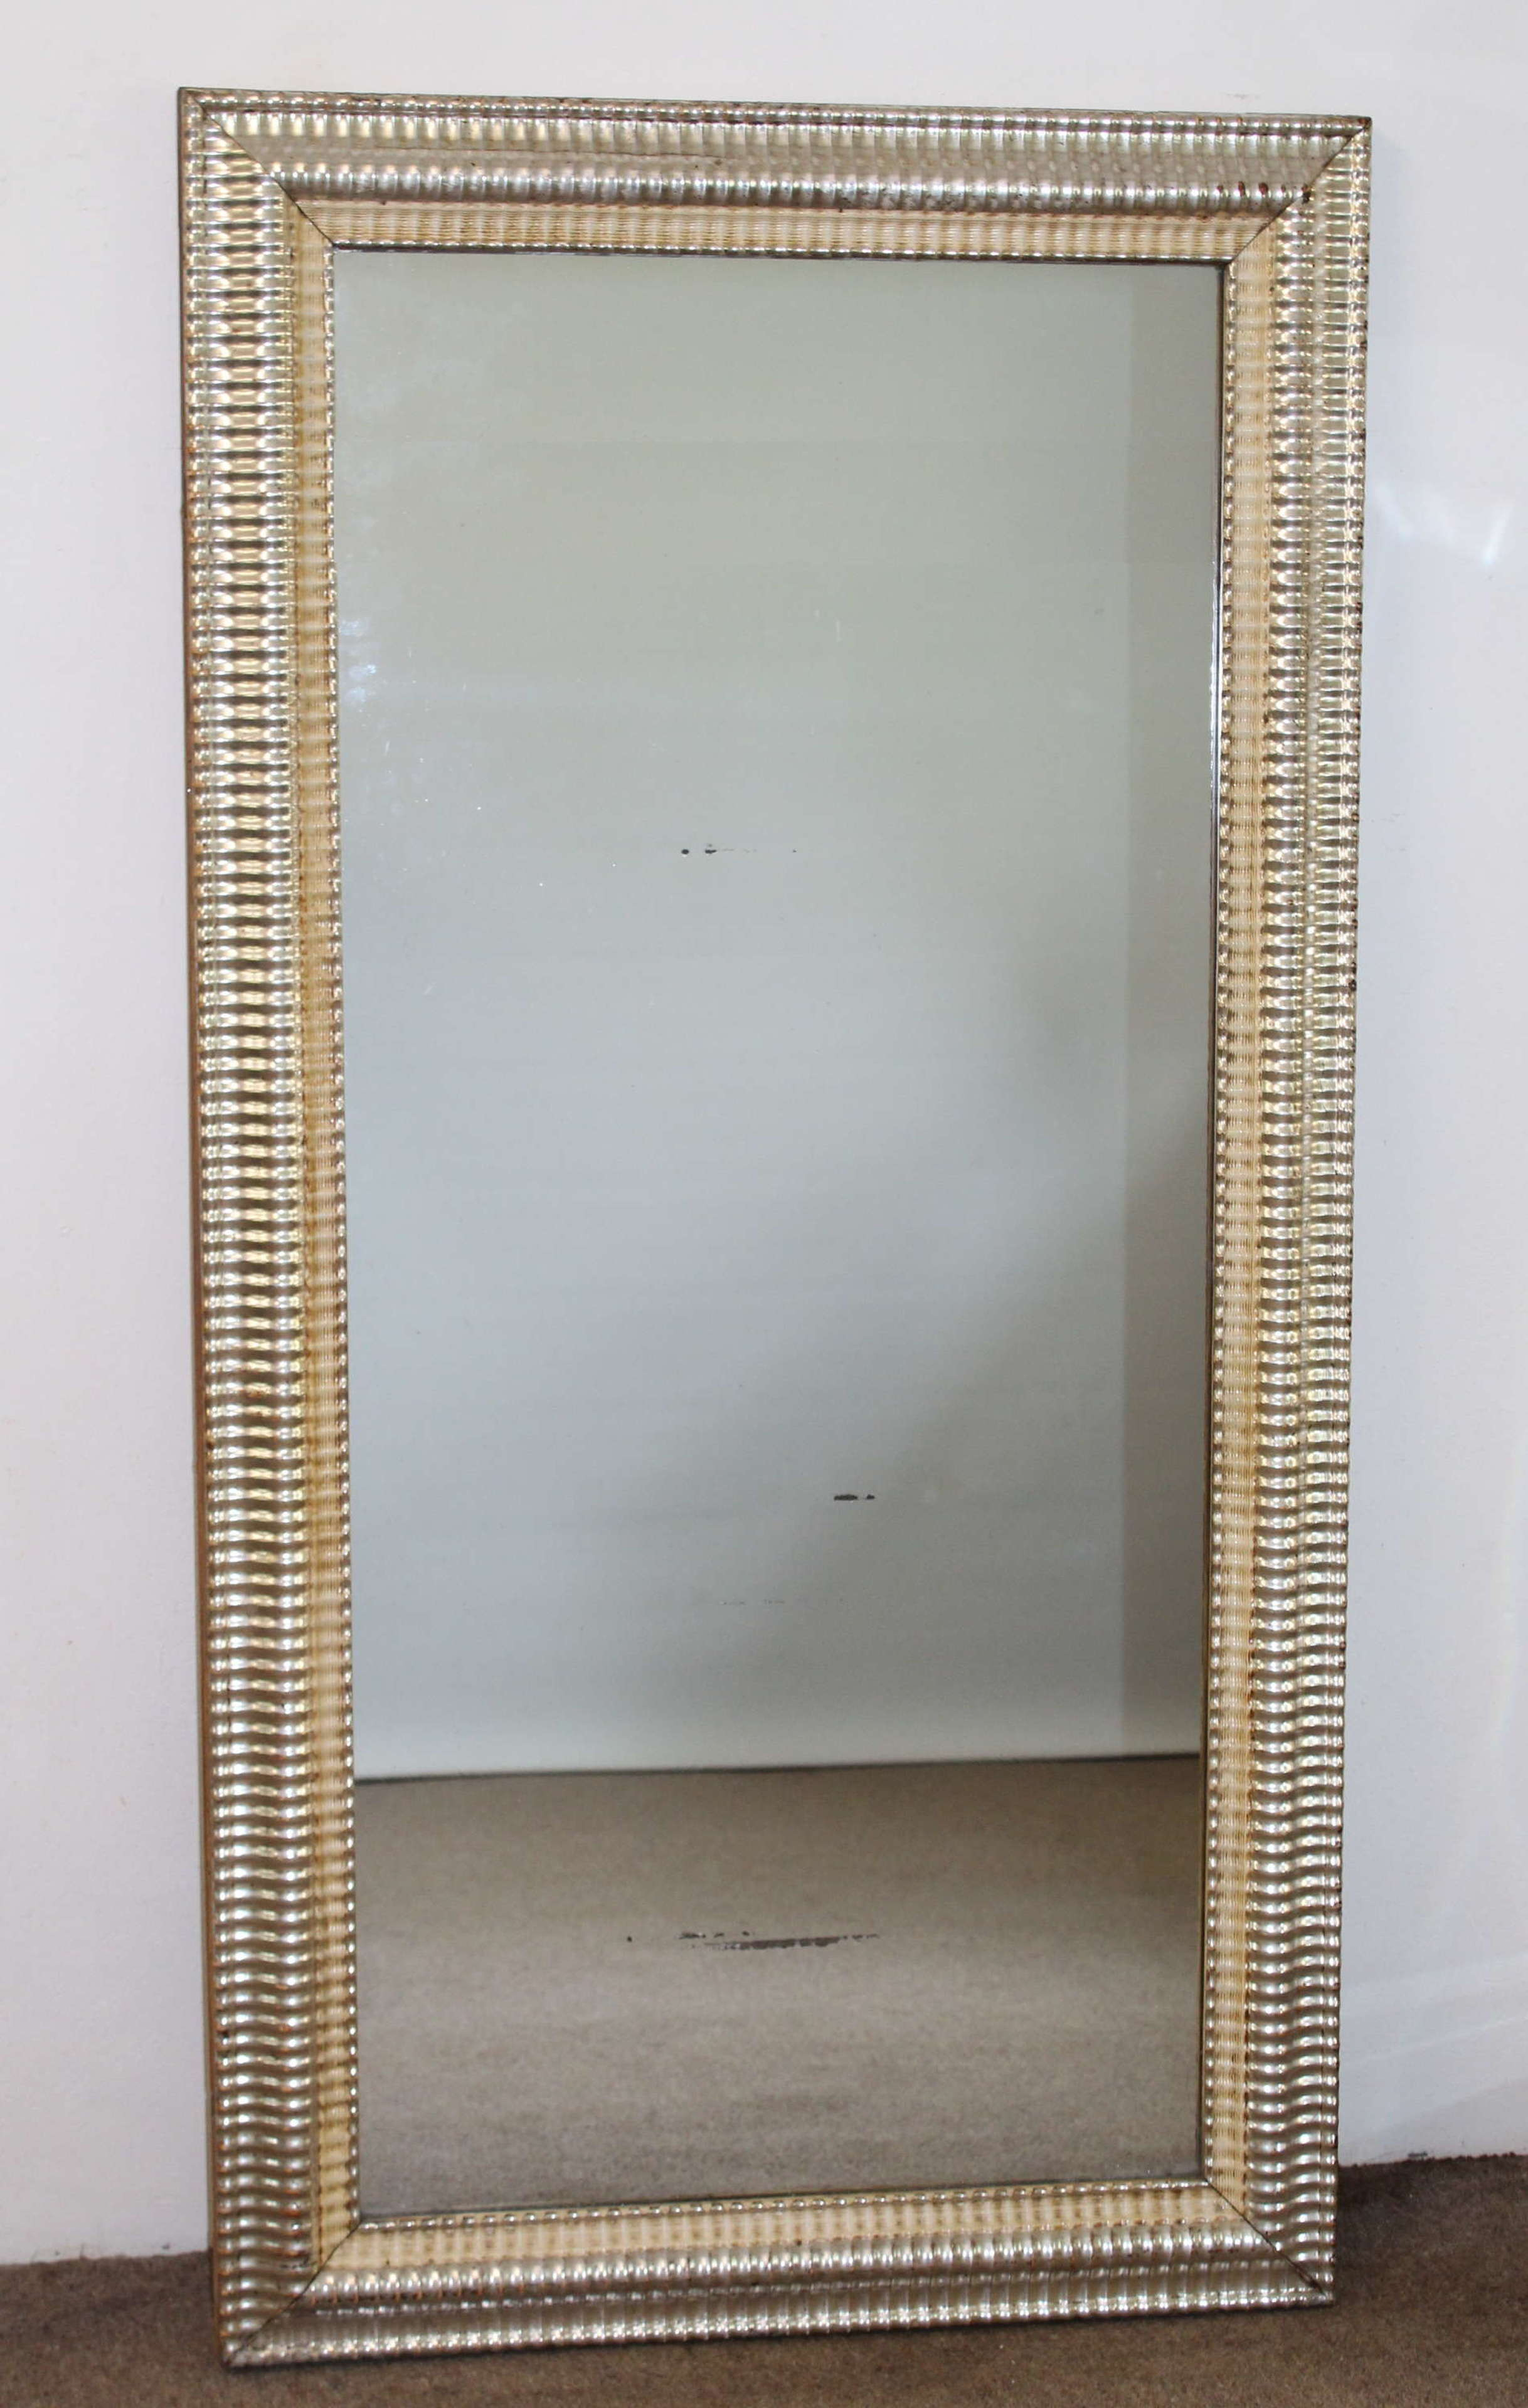 Antique French silver ripple framed mirror